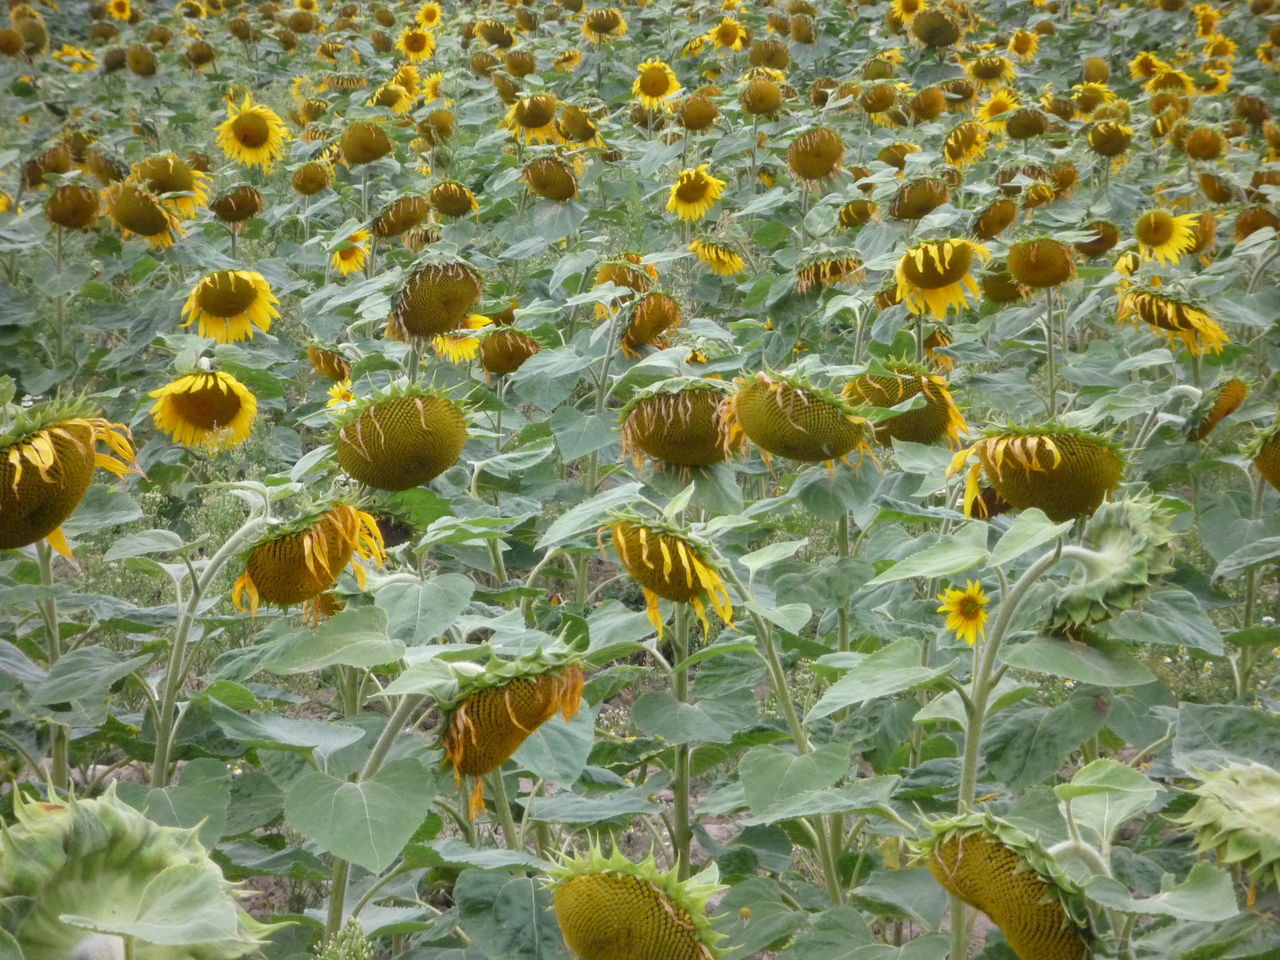 Close-up Day Field Of Sunflowers Fragility Full Frame Growth High Angle View Nature No People Outdoors Plant Sunflowers